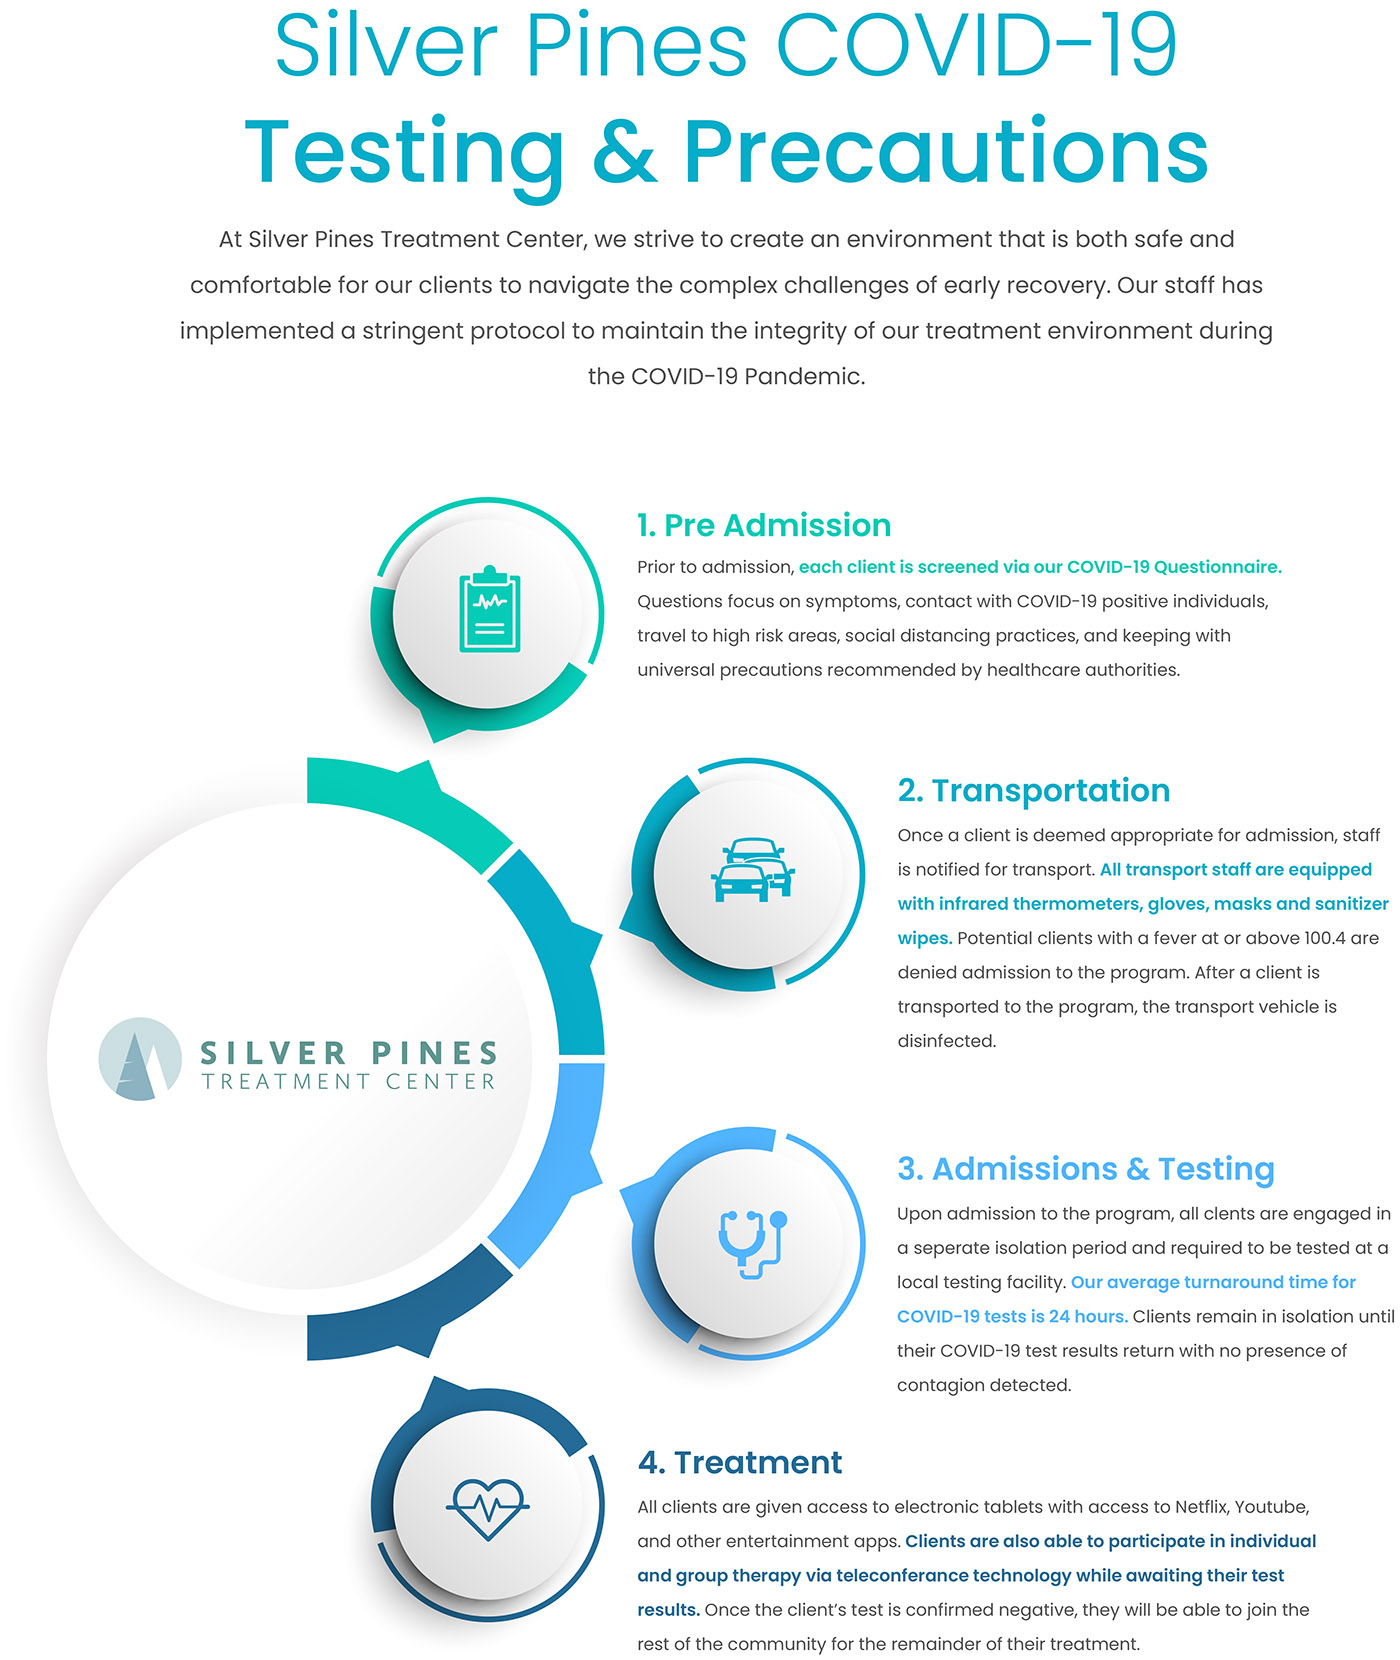 infographic describing Silver Pines Treatment Center's admission policy on COVID-19